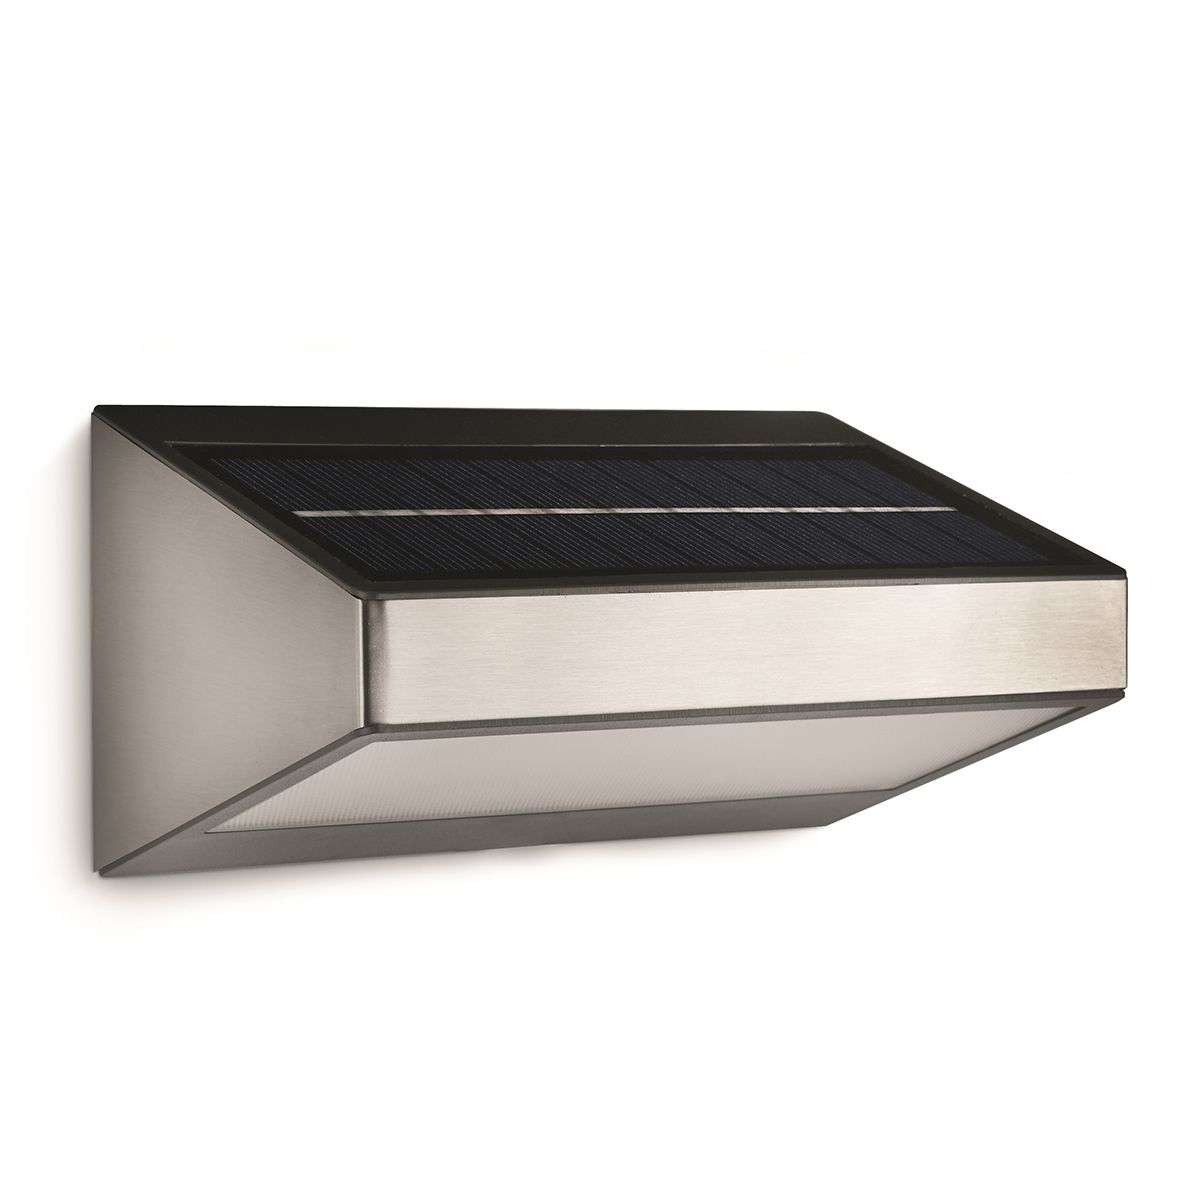 Greenhouse led solar outside wall light lights greenhouse led solar outside wall light aloadofball Images